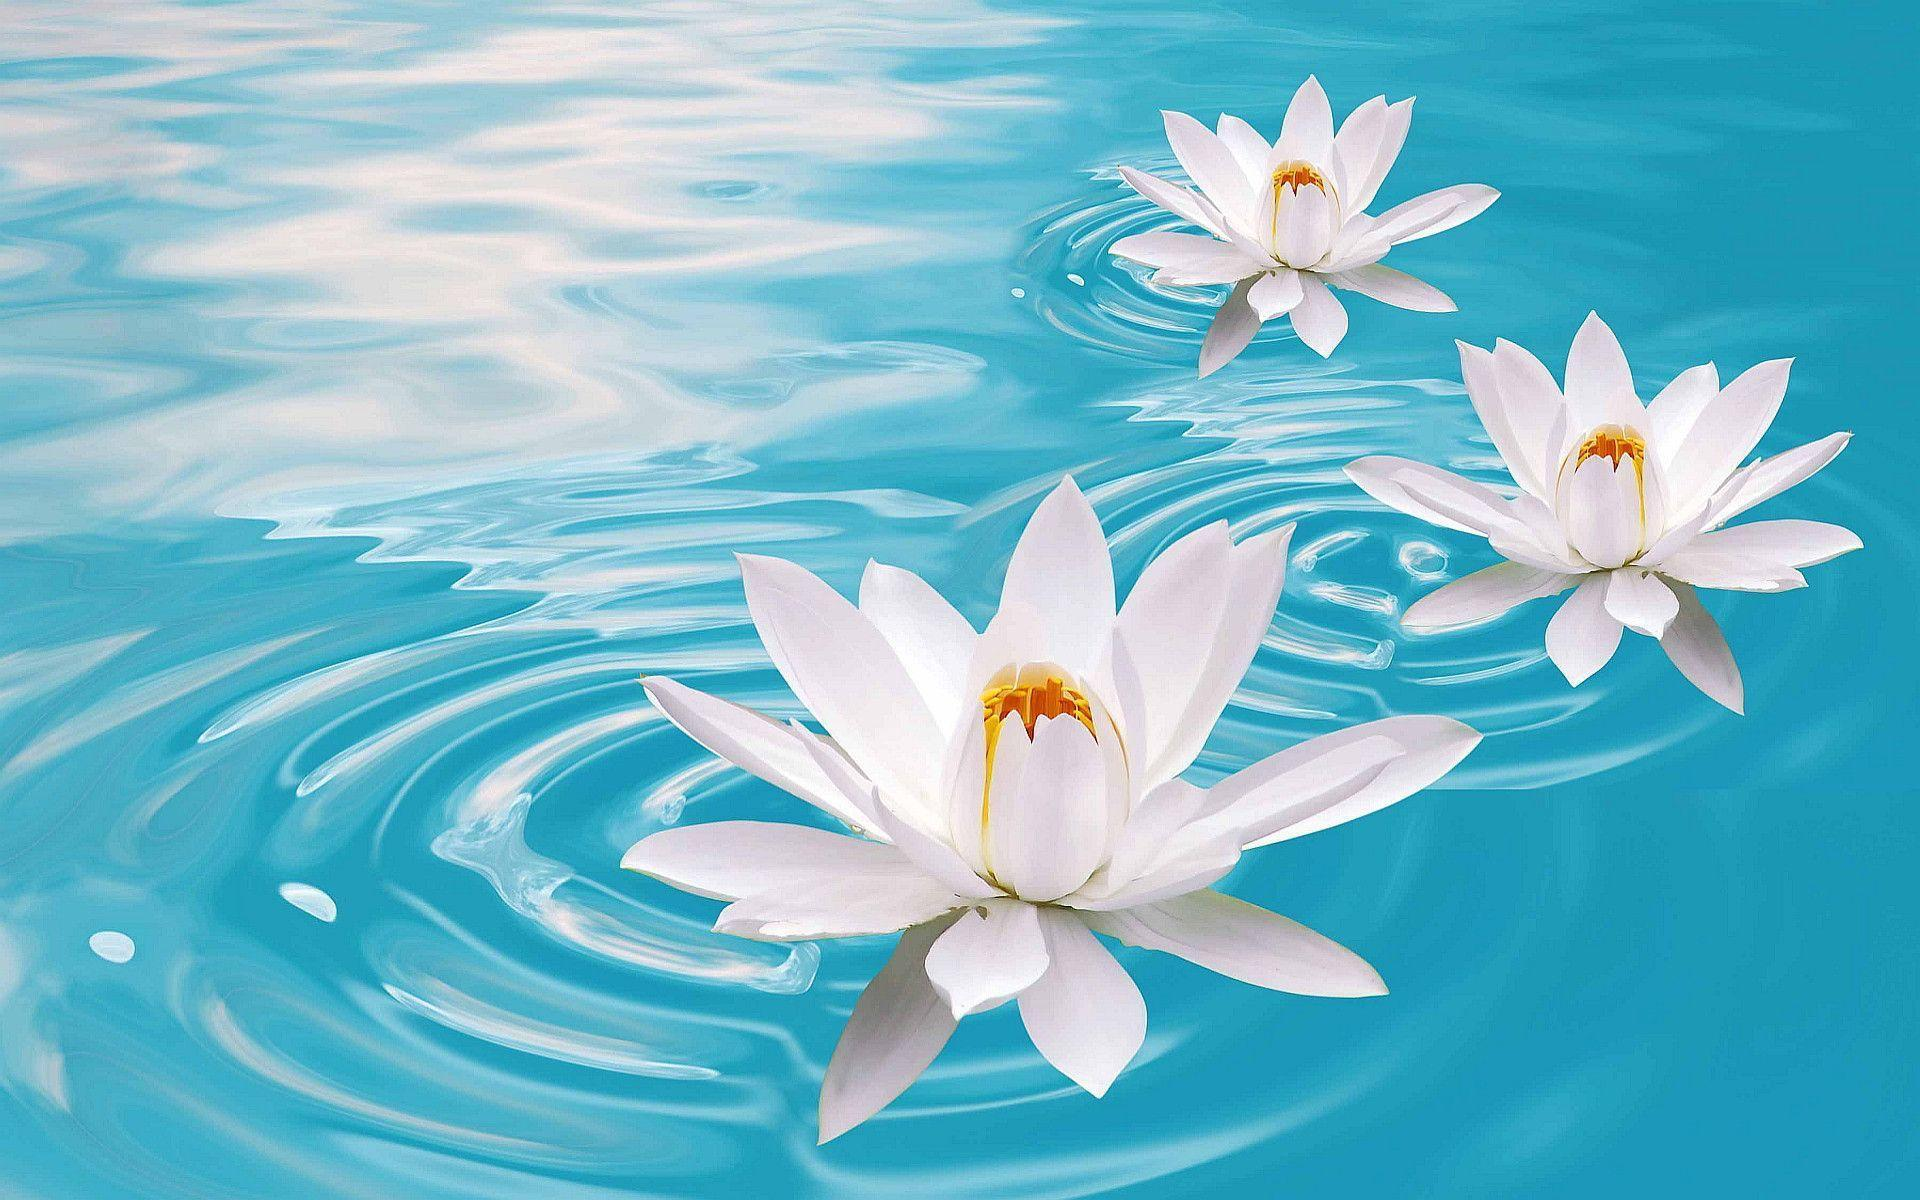 Lotus flower wallpapers wallpaper cave lotus flowers wallpapers pictures mightylinksfo